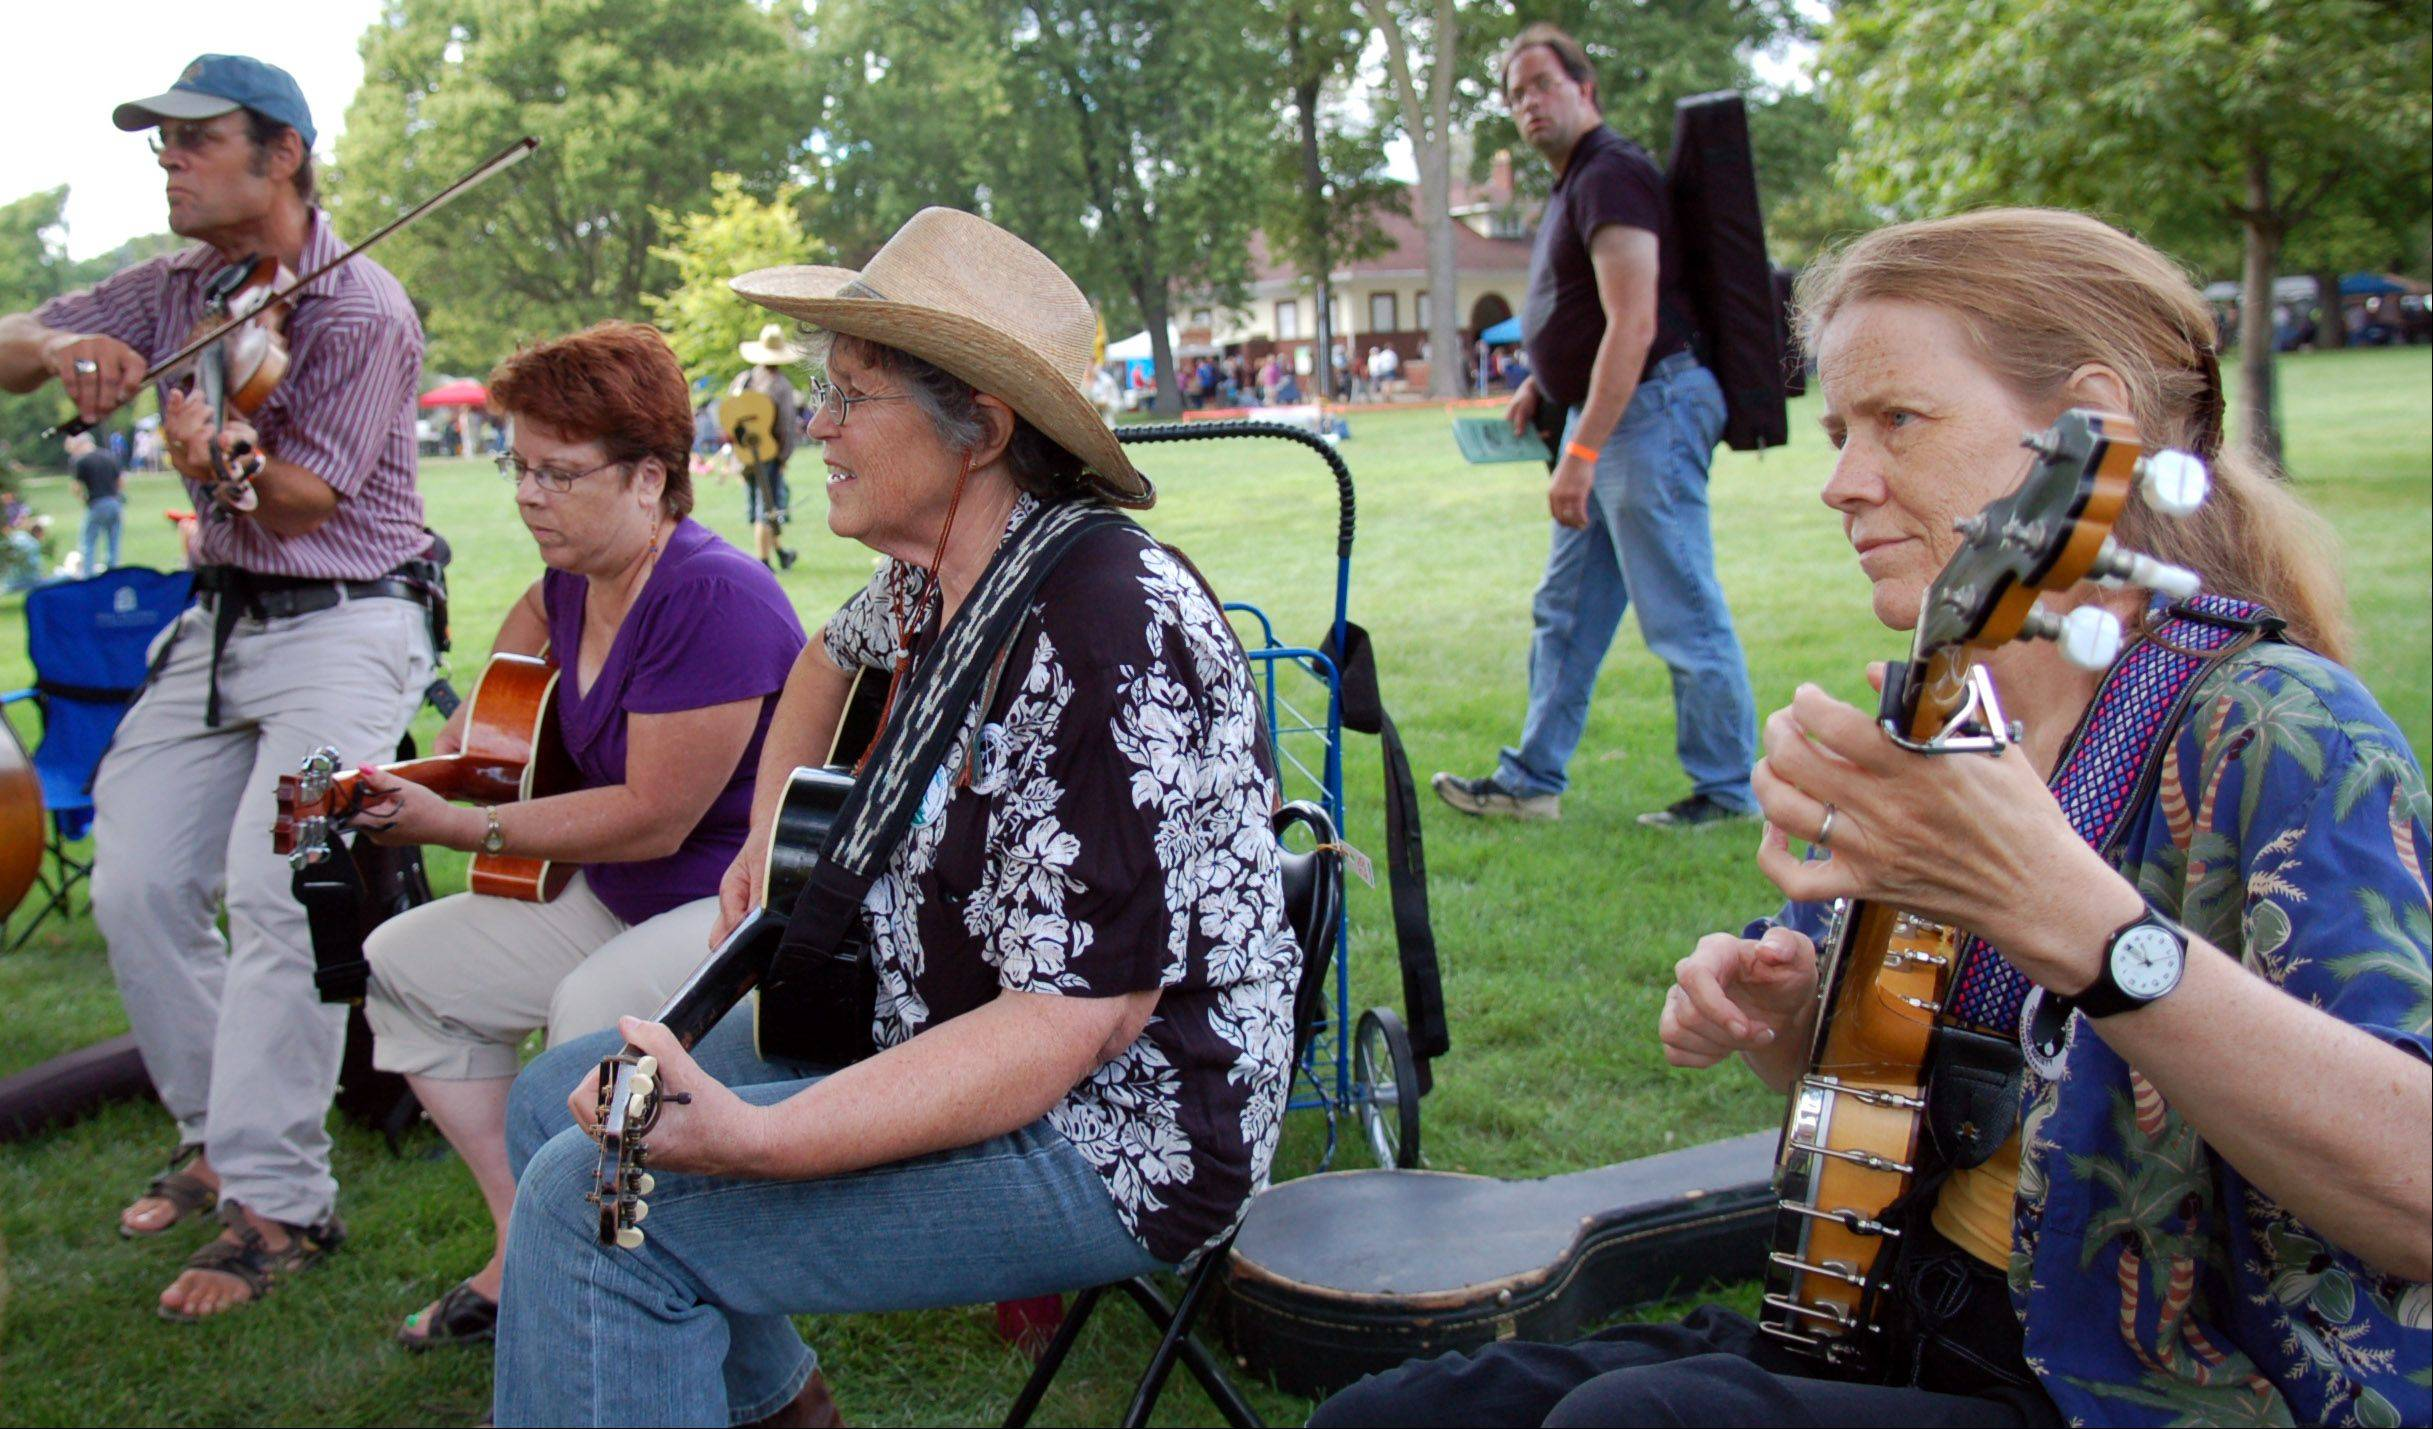 A group of musicians play folk music during last year�s 35th Fox Valley Folk Music and Storytelling Festival at Island Park on the Fox River in Geneva. The group meets up every year to play together; some are old friends and some are new.